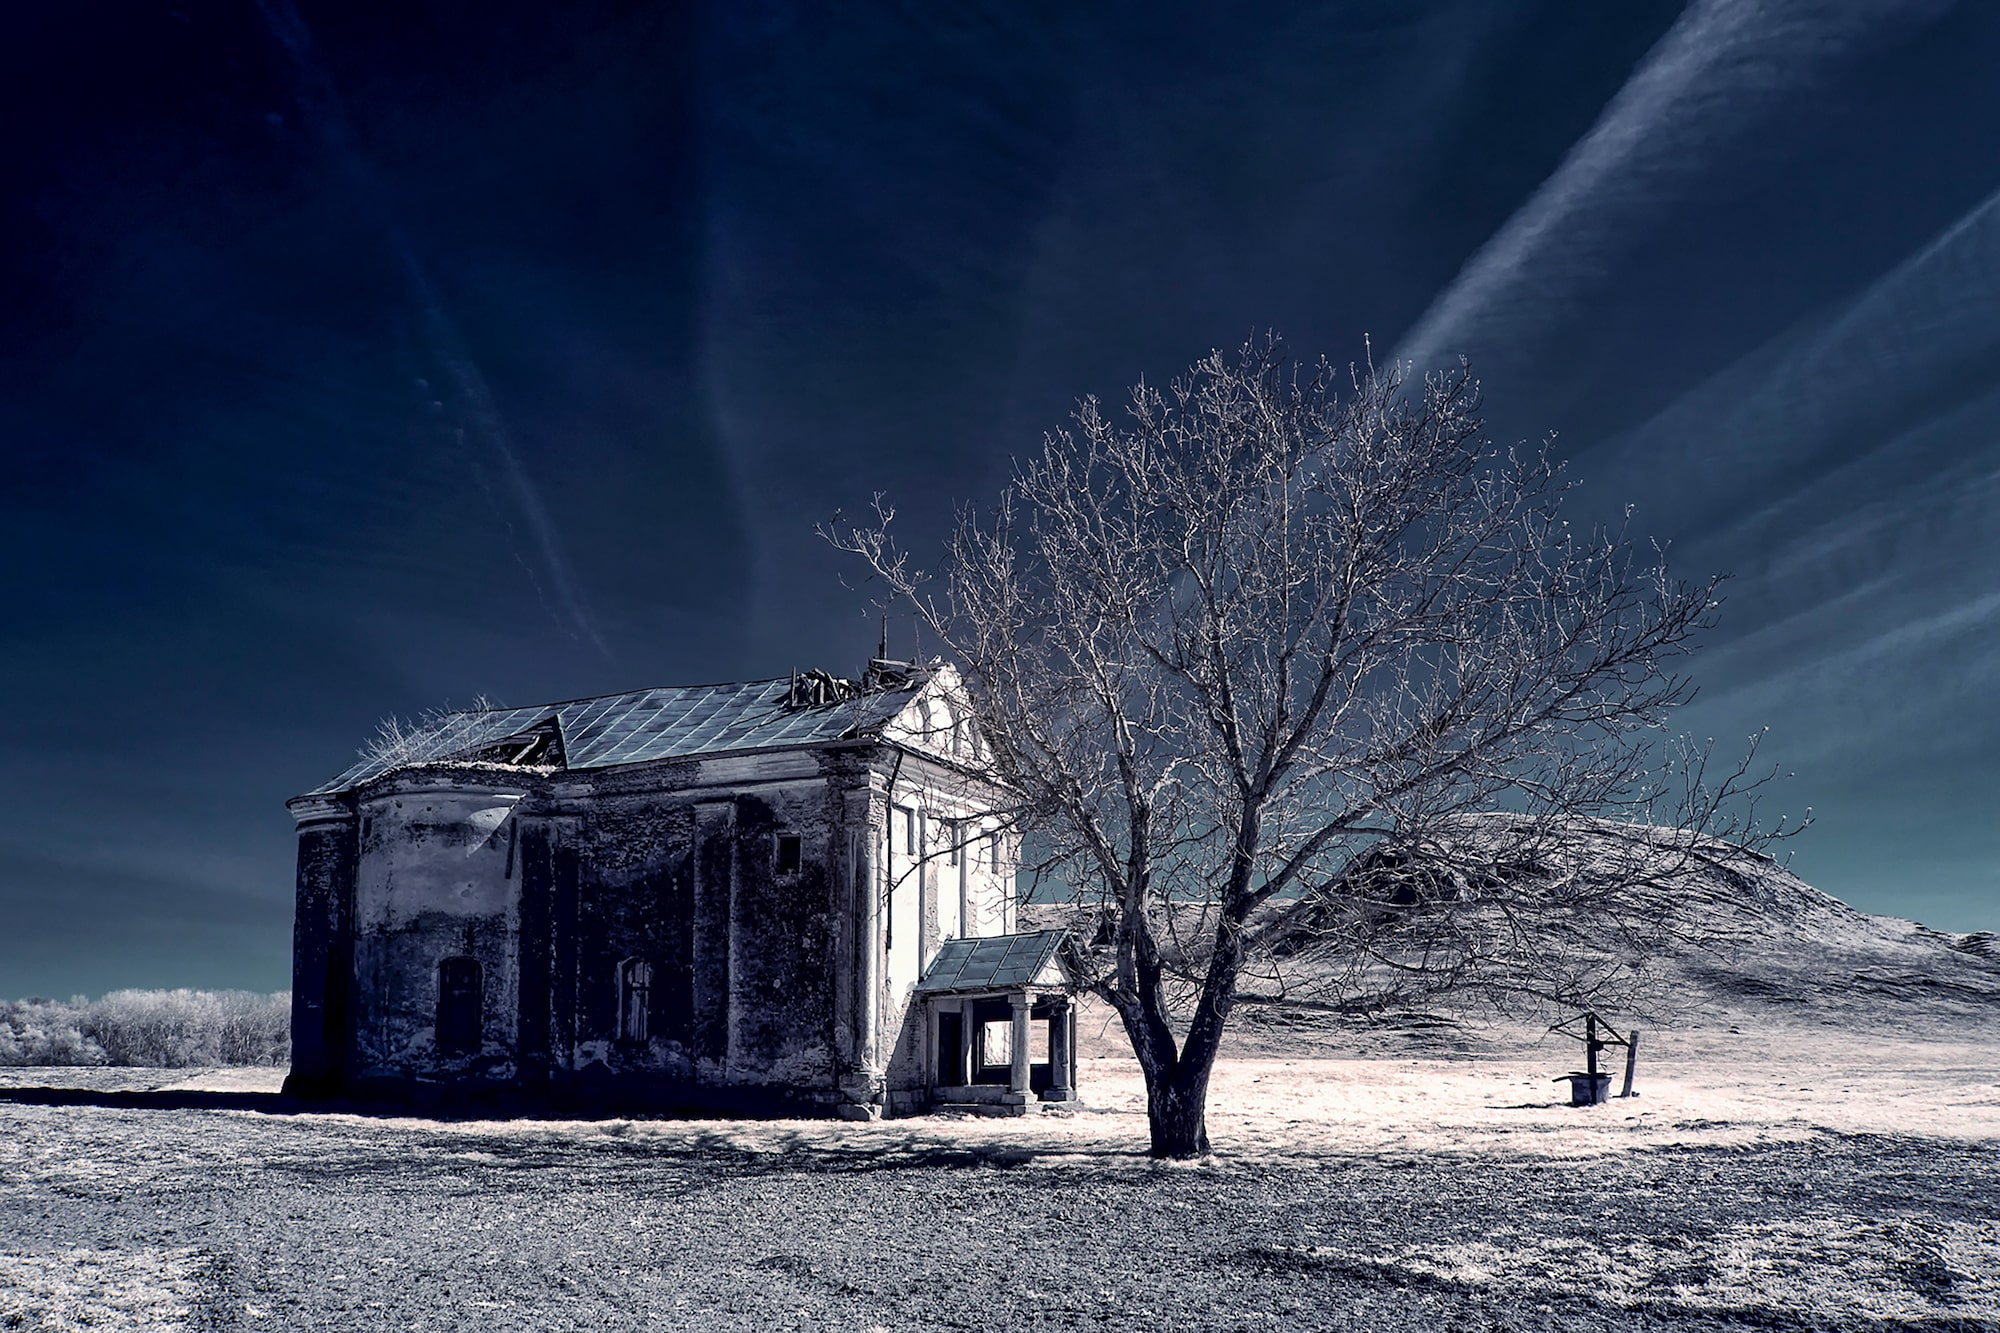 alin popescu sony alpha 6000 infrared shot of a house in the desert with a tree beside it